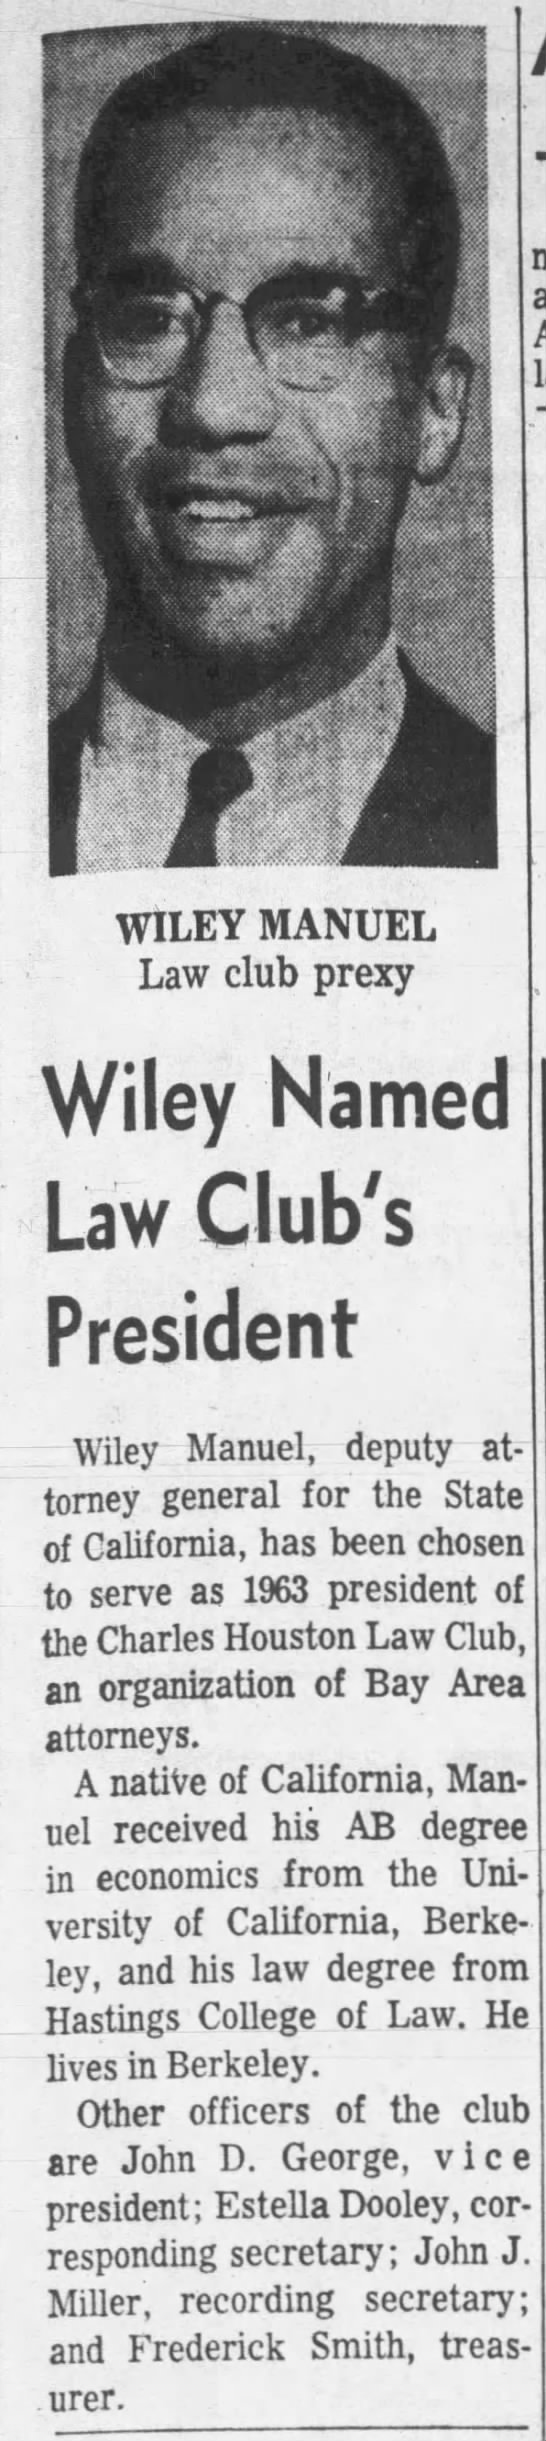 Wiley - pres. of Charles Houston law club -